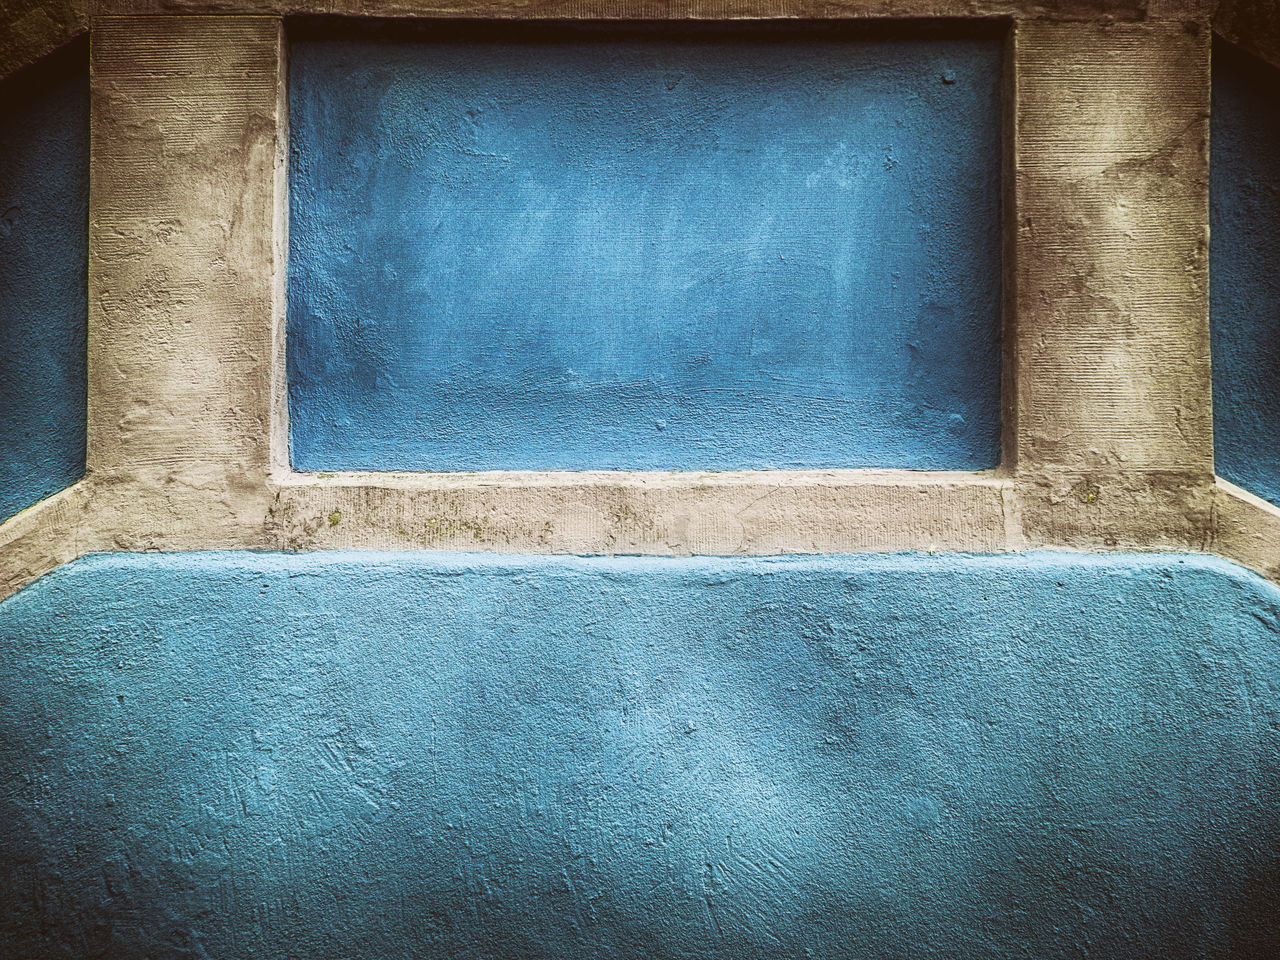 blue, architecture, wall - building feature, day, built structure, no people, indoors, close-up, textured, wall, architectural column, building, old, pattern, copy space, full frame, backgrounds, window, concrete